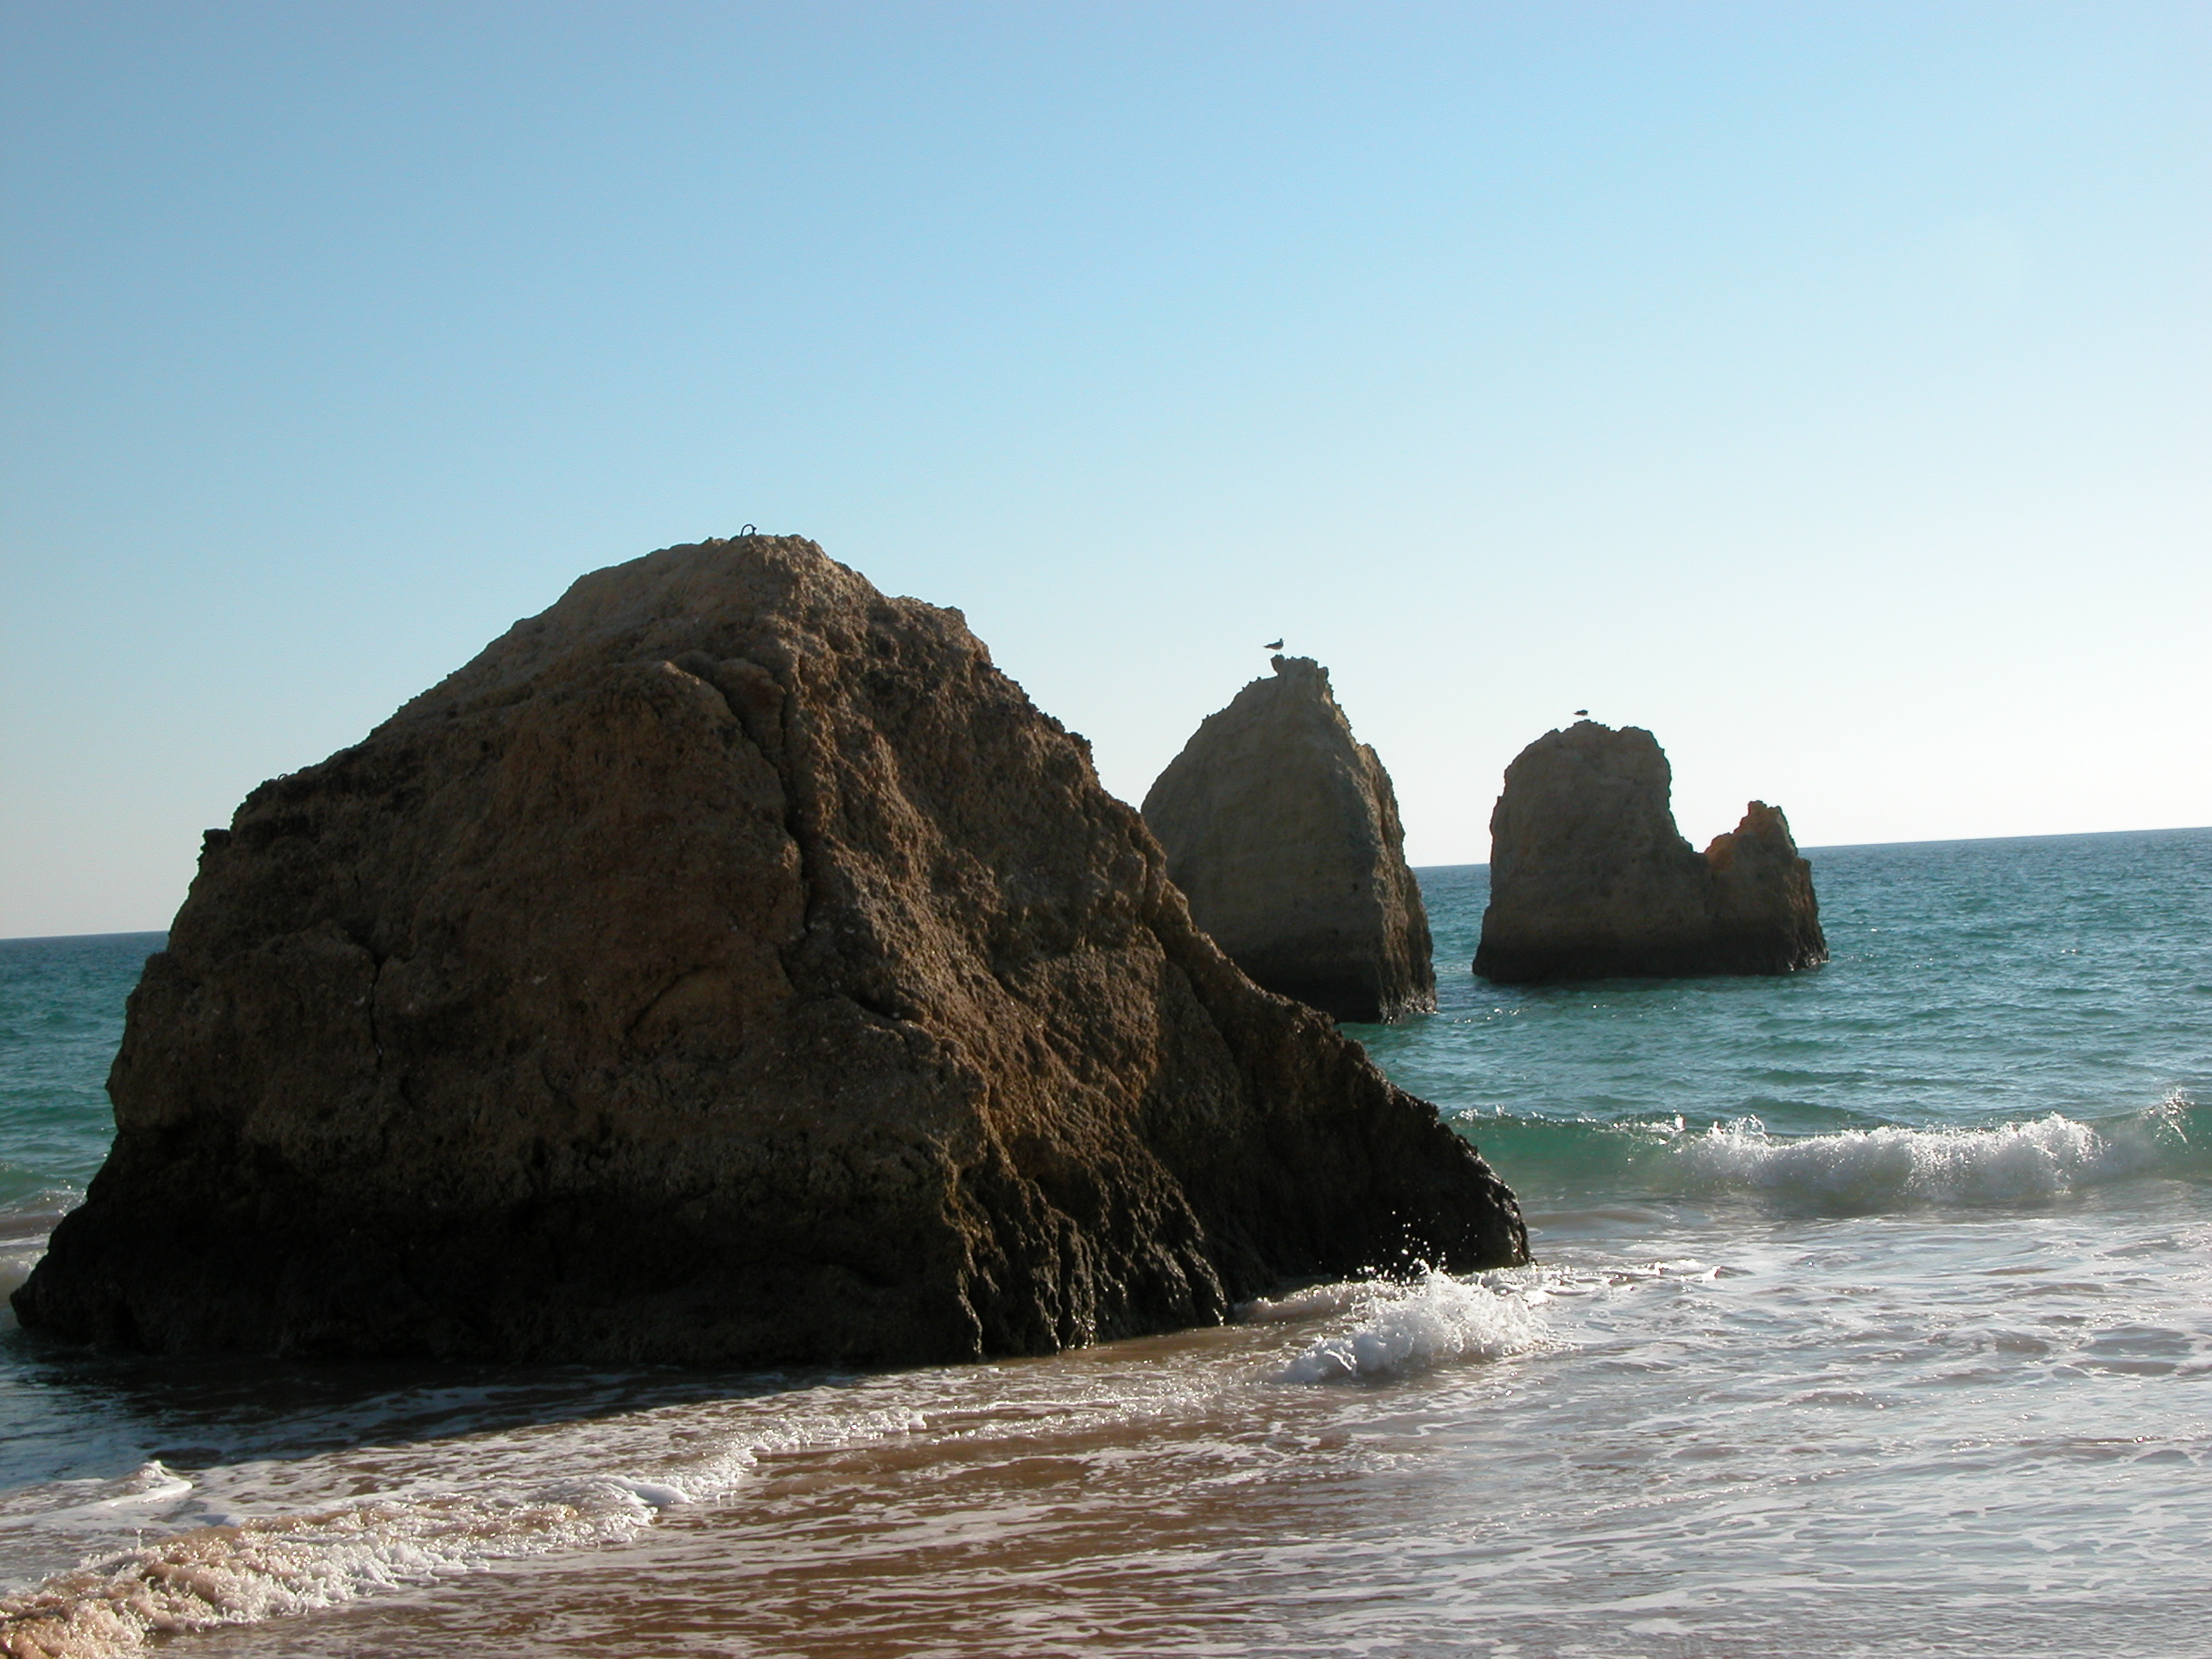 nature landscapes rockscapes rocks rock seascapes beachscapes water sea ocean gull animals birds waves